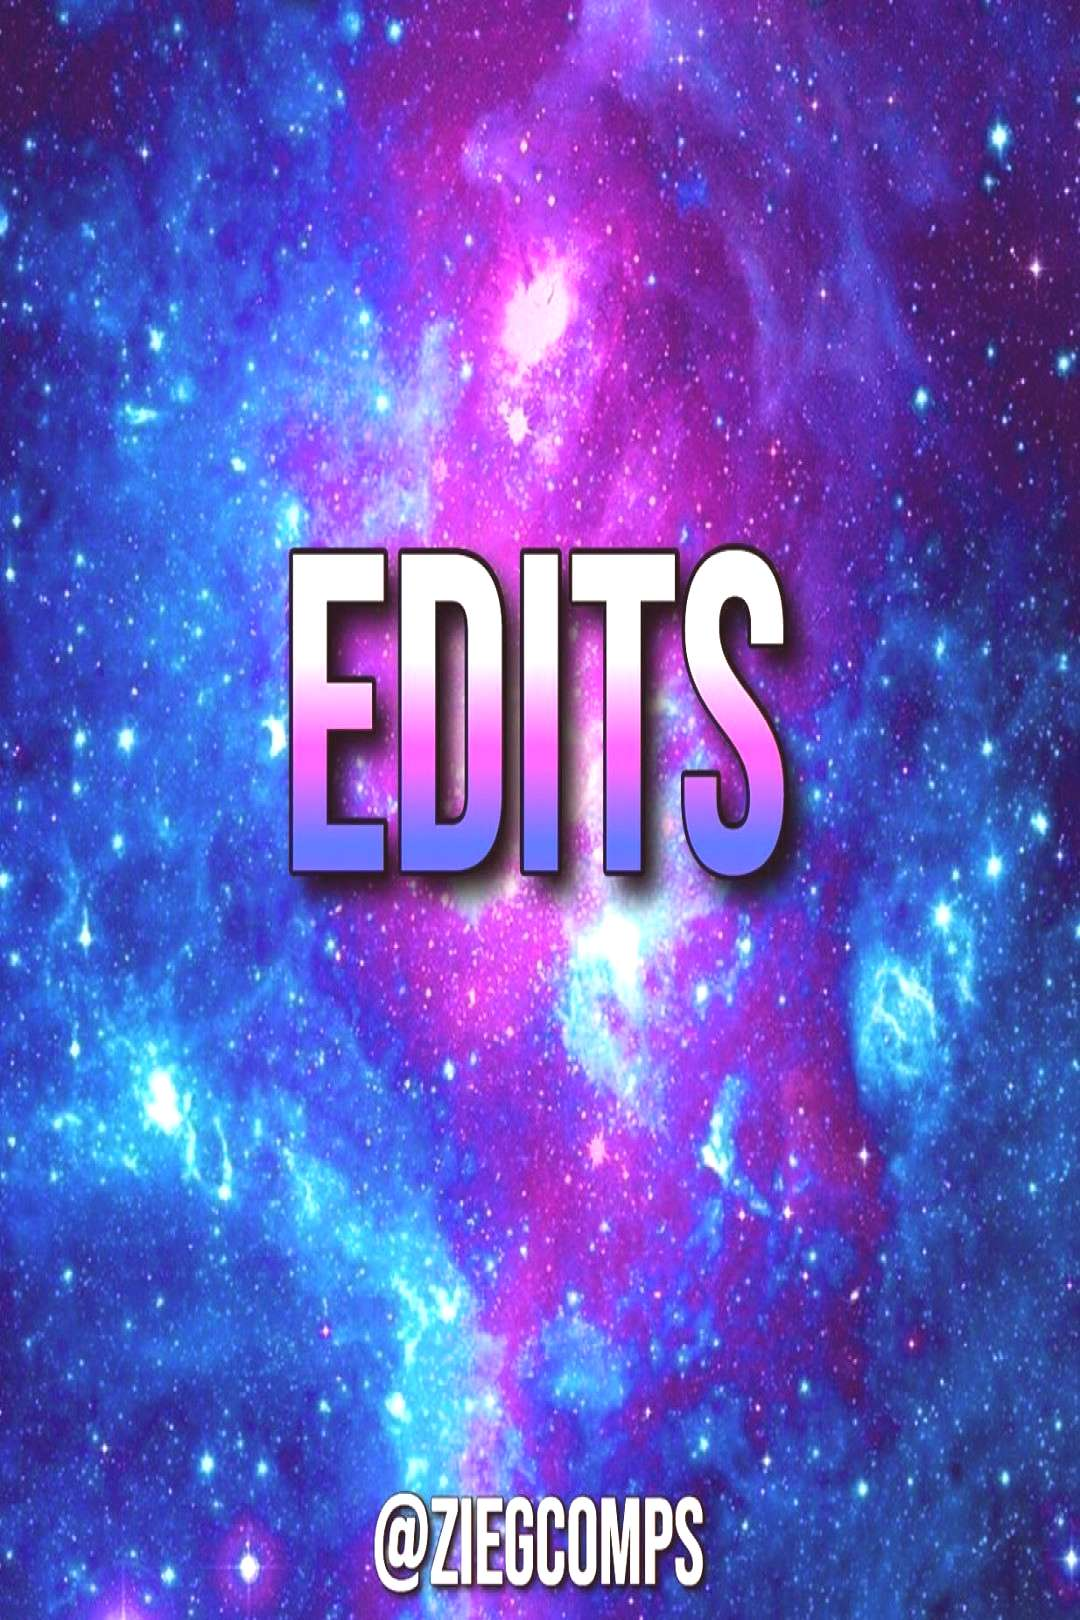 EDIT COMPS on June 02 2020 text that says EDITS